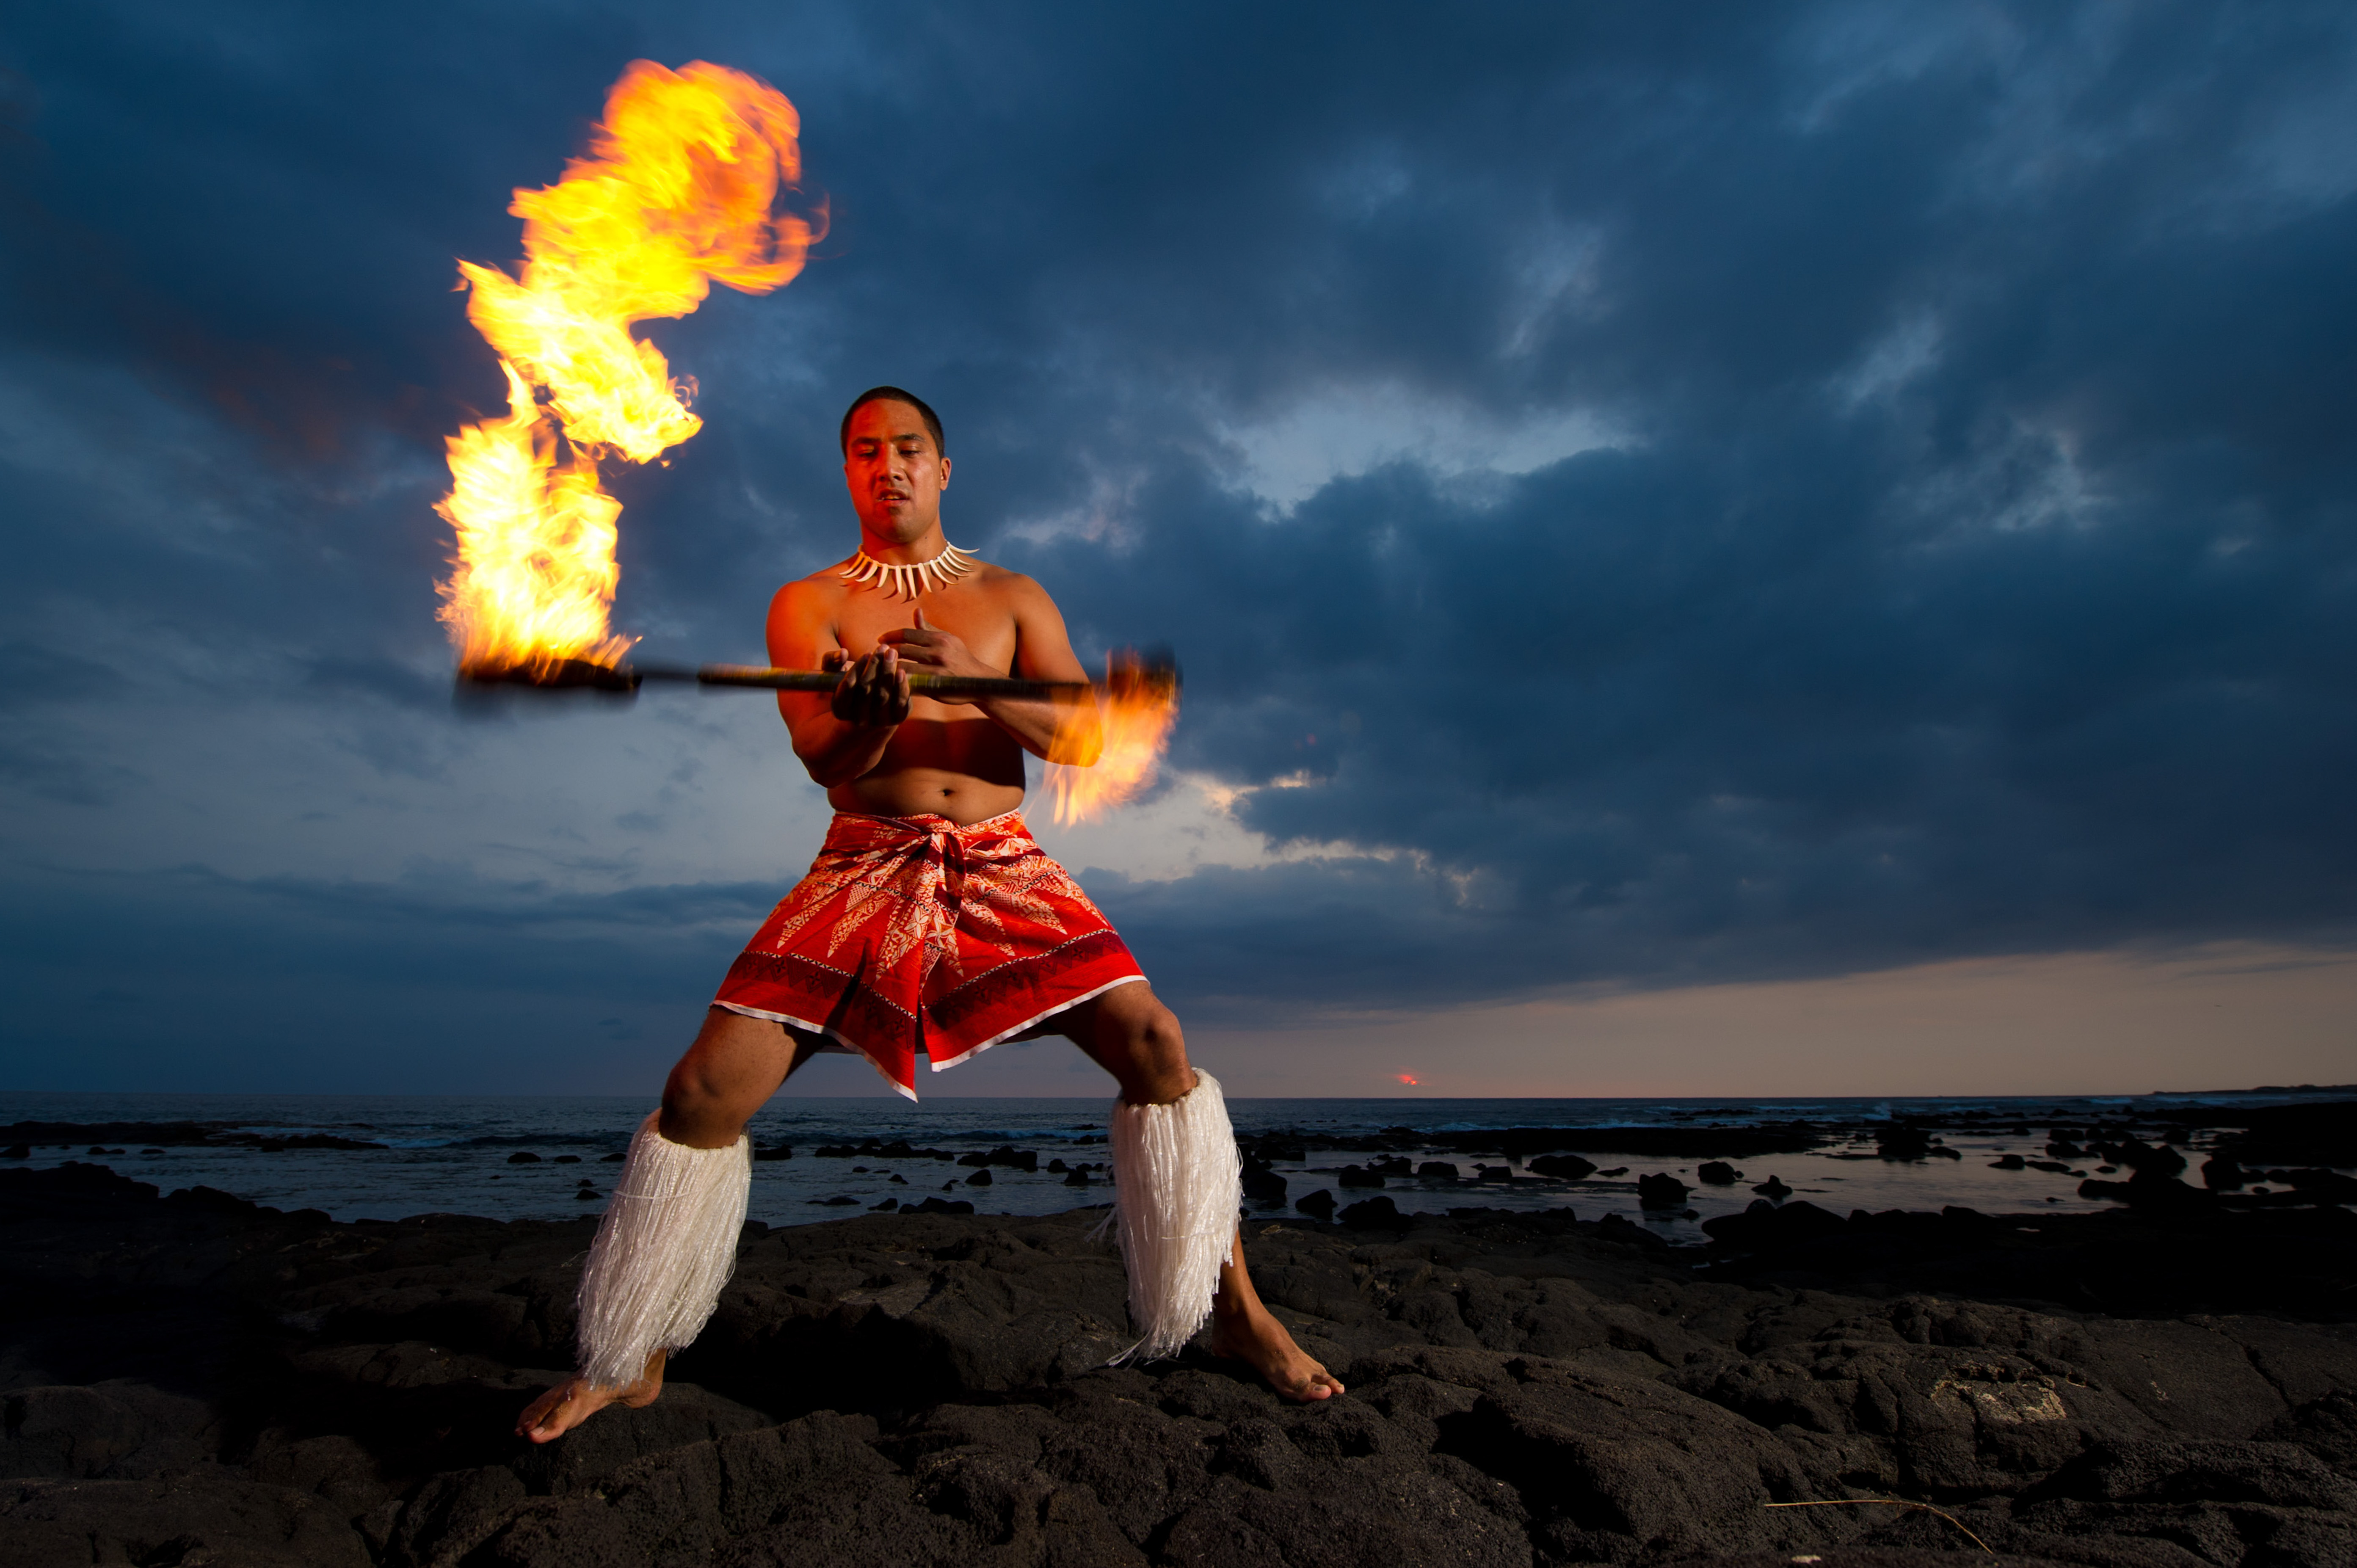 Photographing the Island Breeze Luau cast on the beach of Hawaii